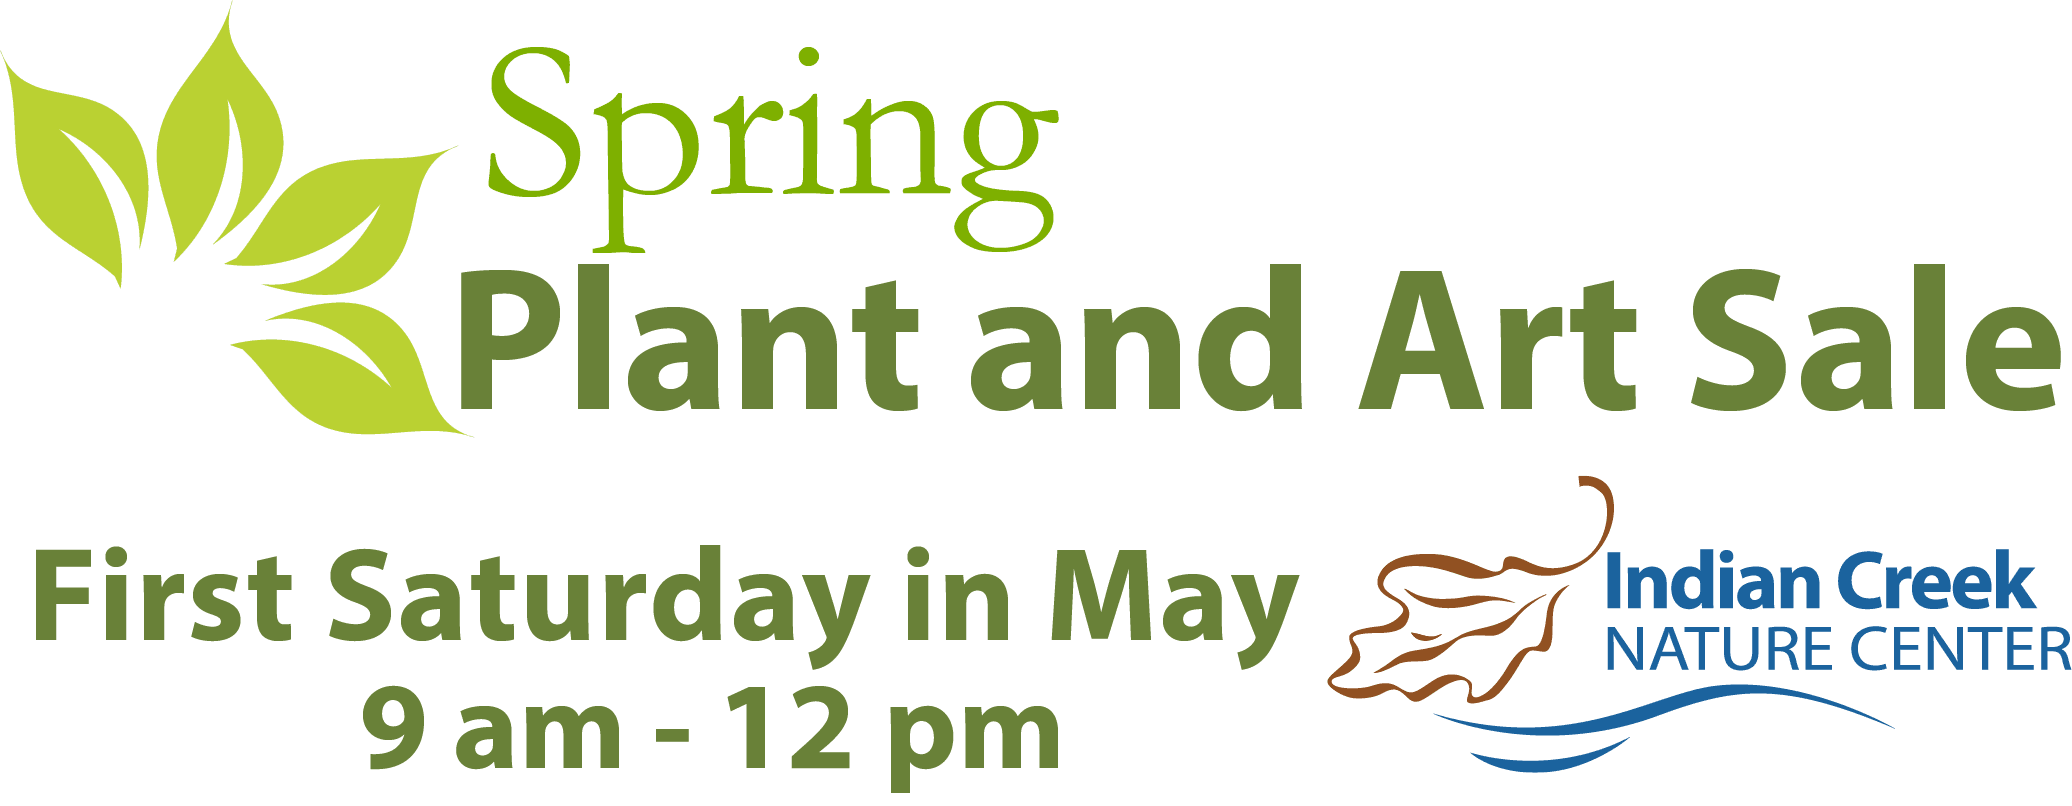 Spring Plant and Art Sale – Indian Creek Nature Center